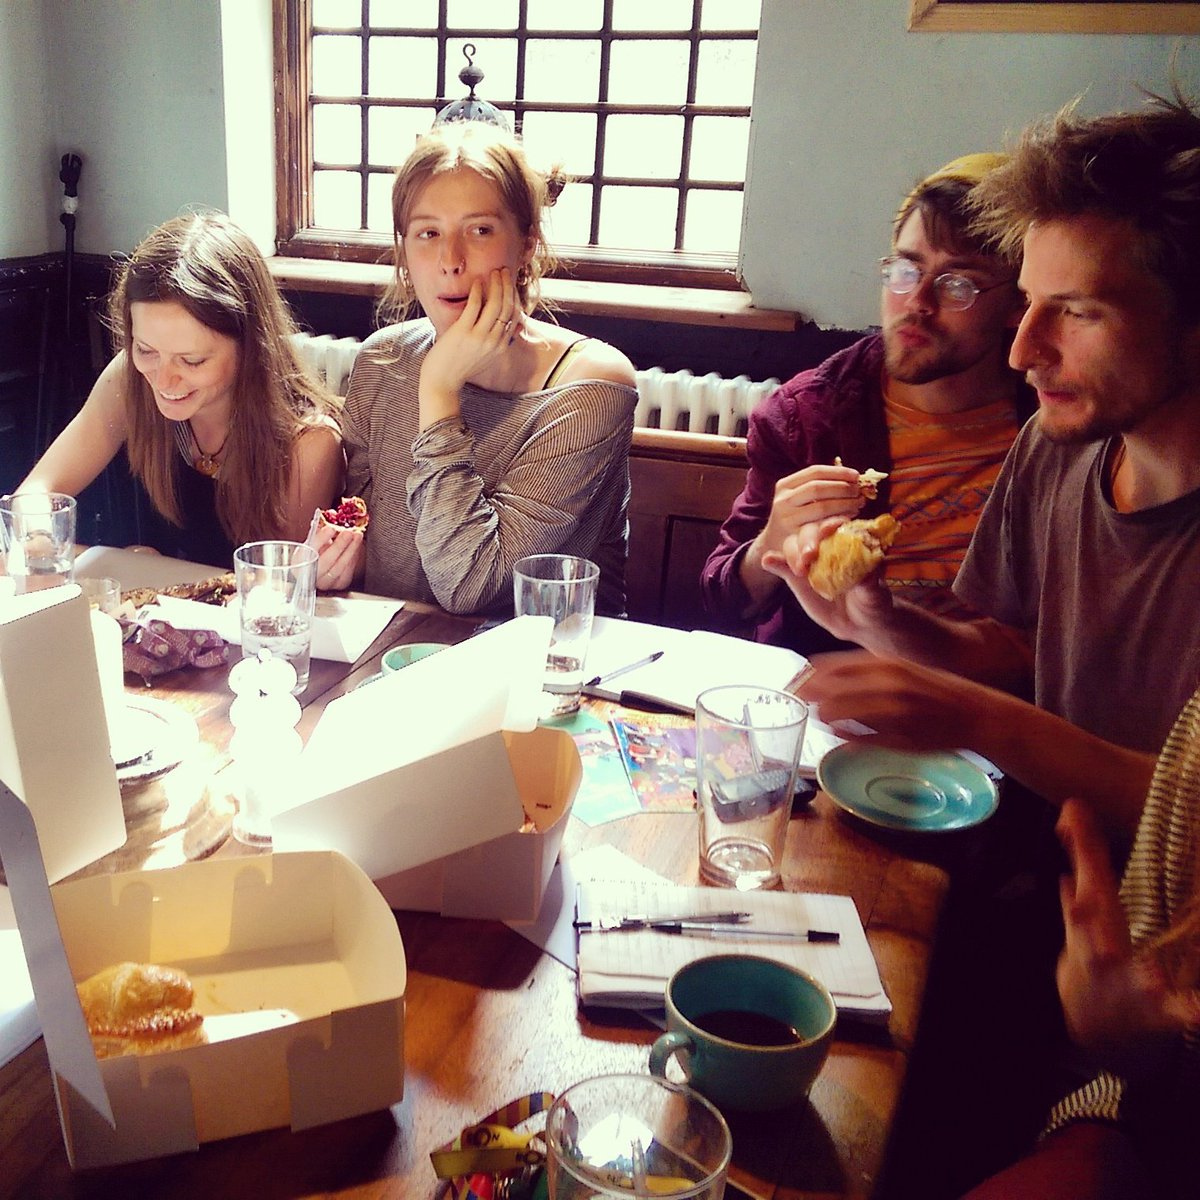 @OMABristol  staff enjoying our goodies!! #luckypeople #eatmoregluten #croissant #pastry #training #bristolbakery #bs2 #happystaff<br>http://pic.twitter.com/8q7Hv7PP1Y